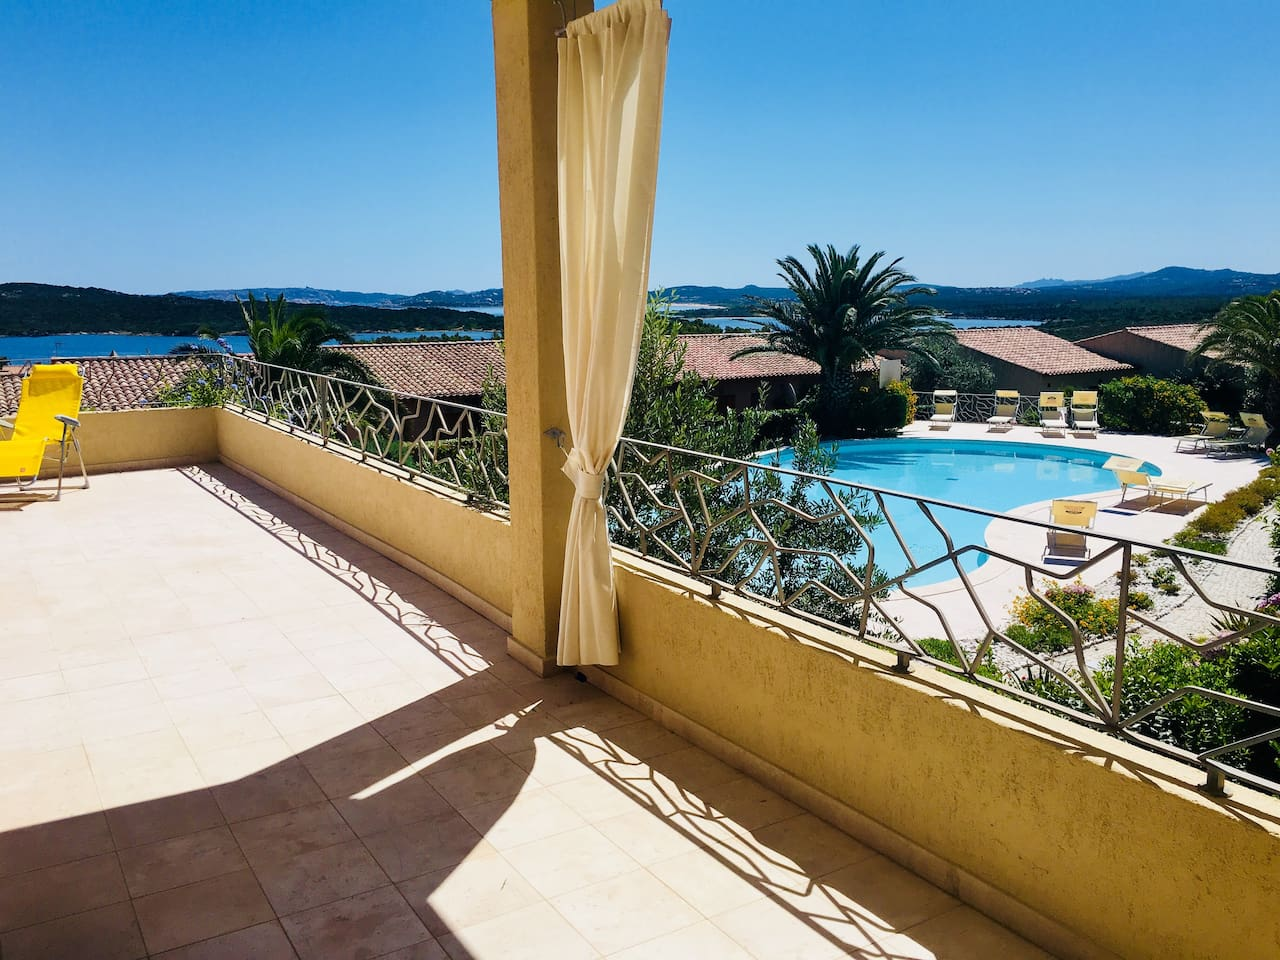 Blick von der 40m2 grossen Terrace auf das Meer und den Pool / View from the 40m2 terrace to the sea and the pool.